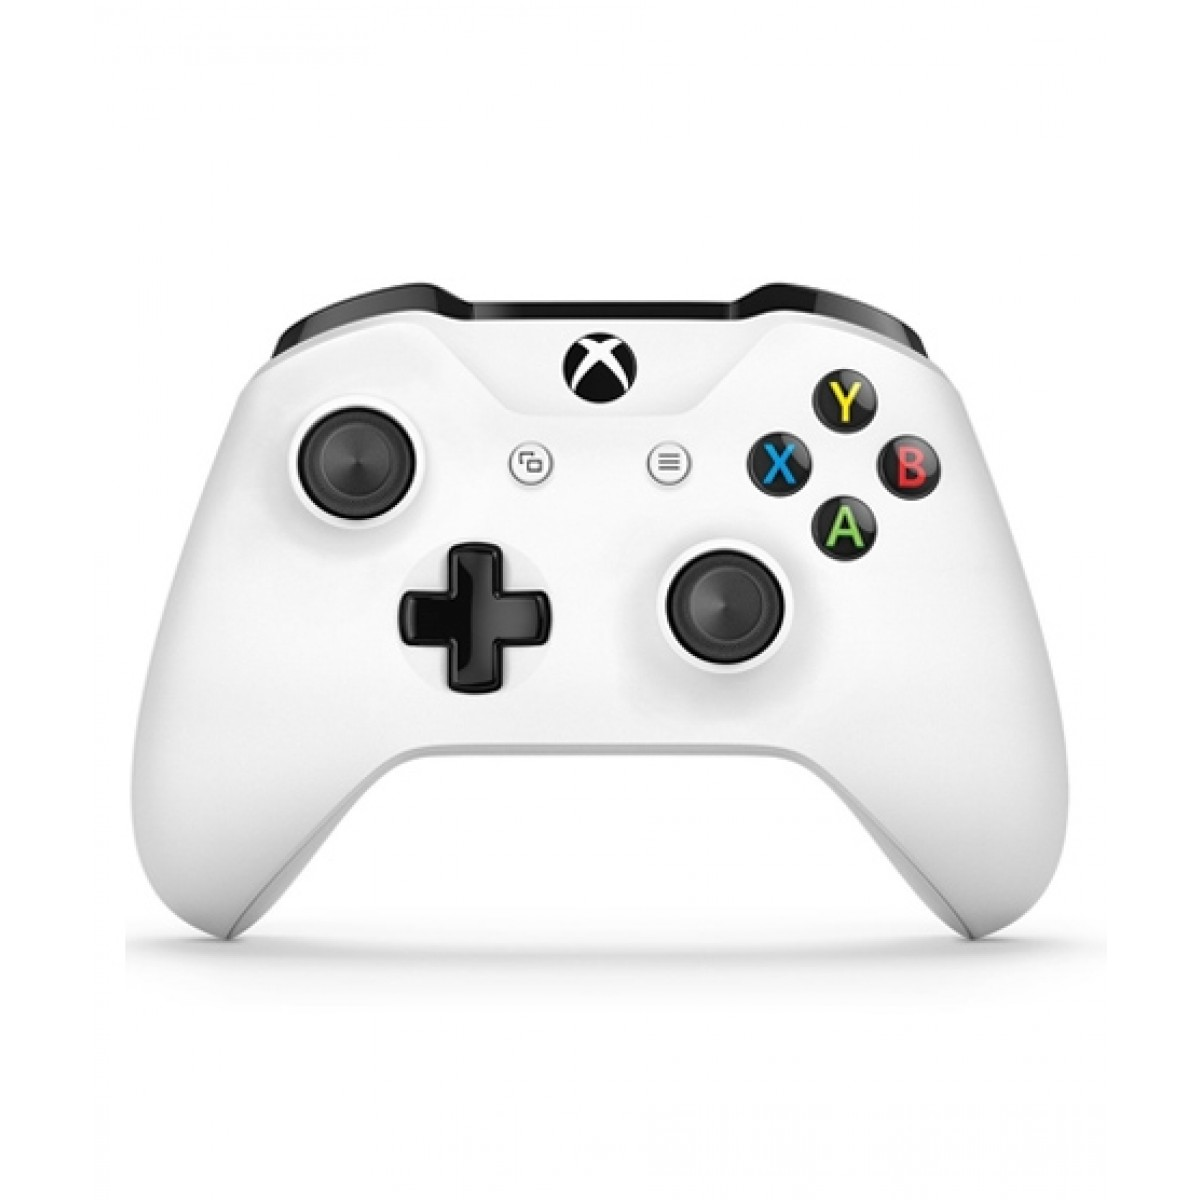 Microsoft Xbox One S Wireless Controller - White Price in Pakistan | Buy Xbox  Wireless Controller | iShopping.pk